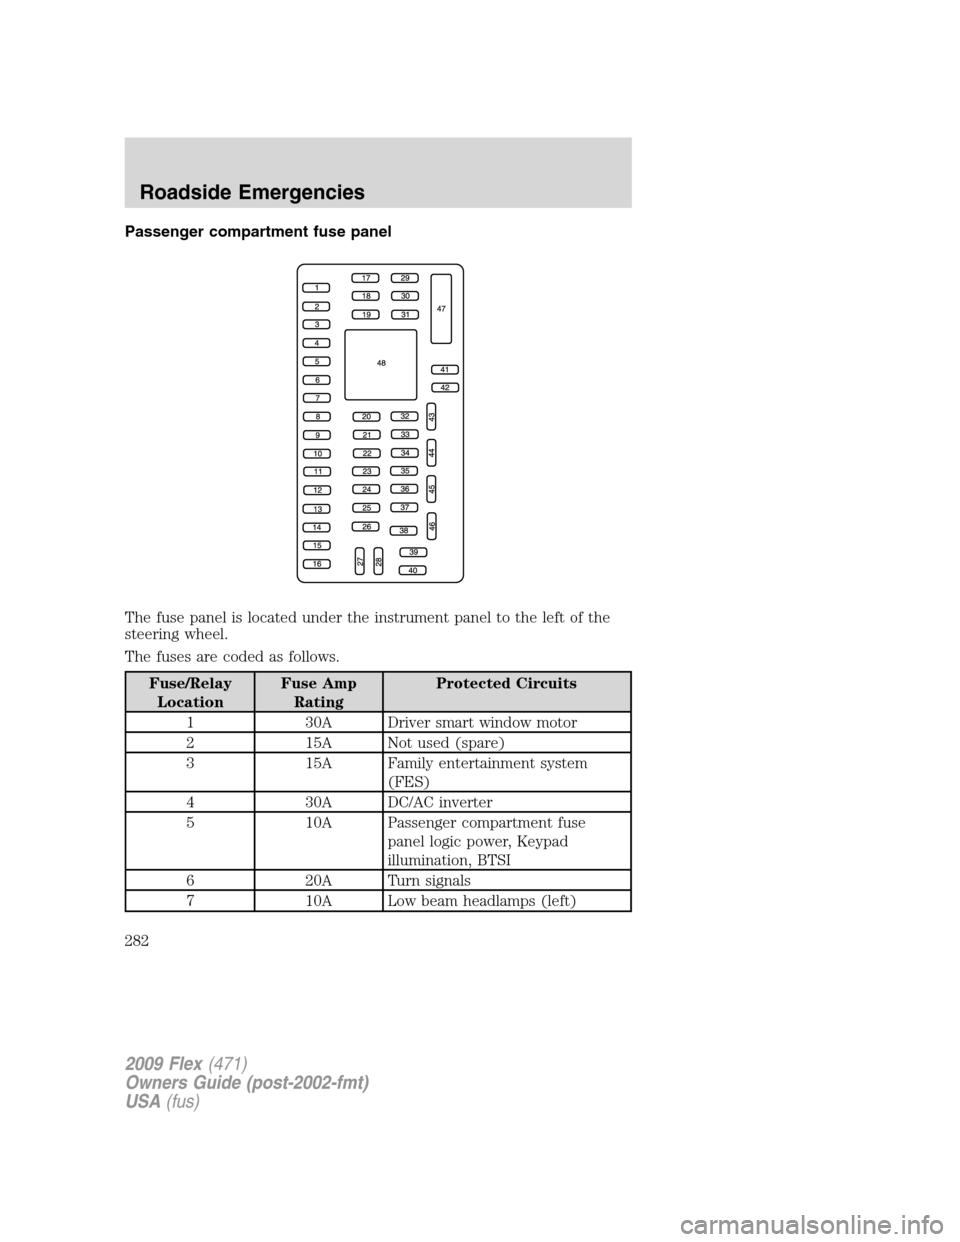 medium resolution of ford flex 2009 1 g owners manual page 282 passenger compartment fuse panel